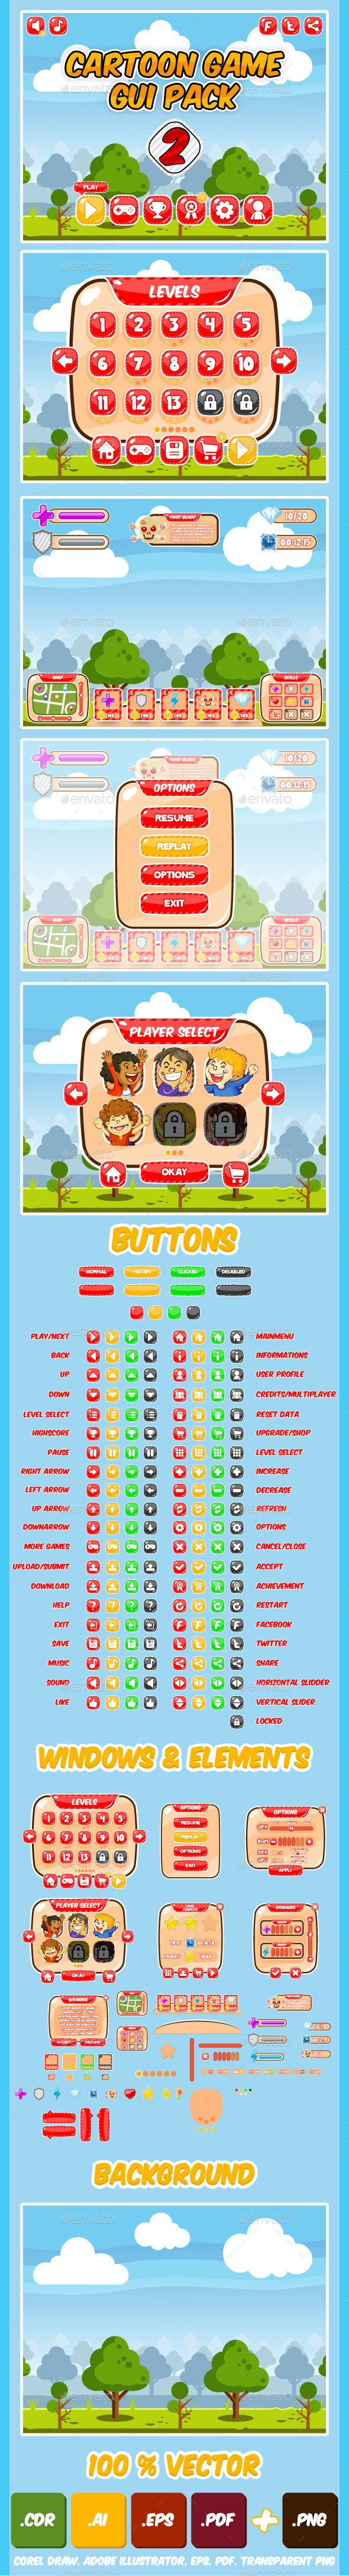 Kids Game UI Kit Pack 2 by CreationArchive   GraphicRiver